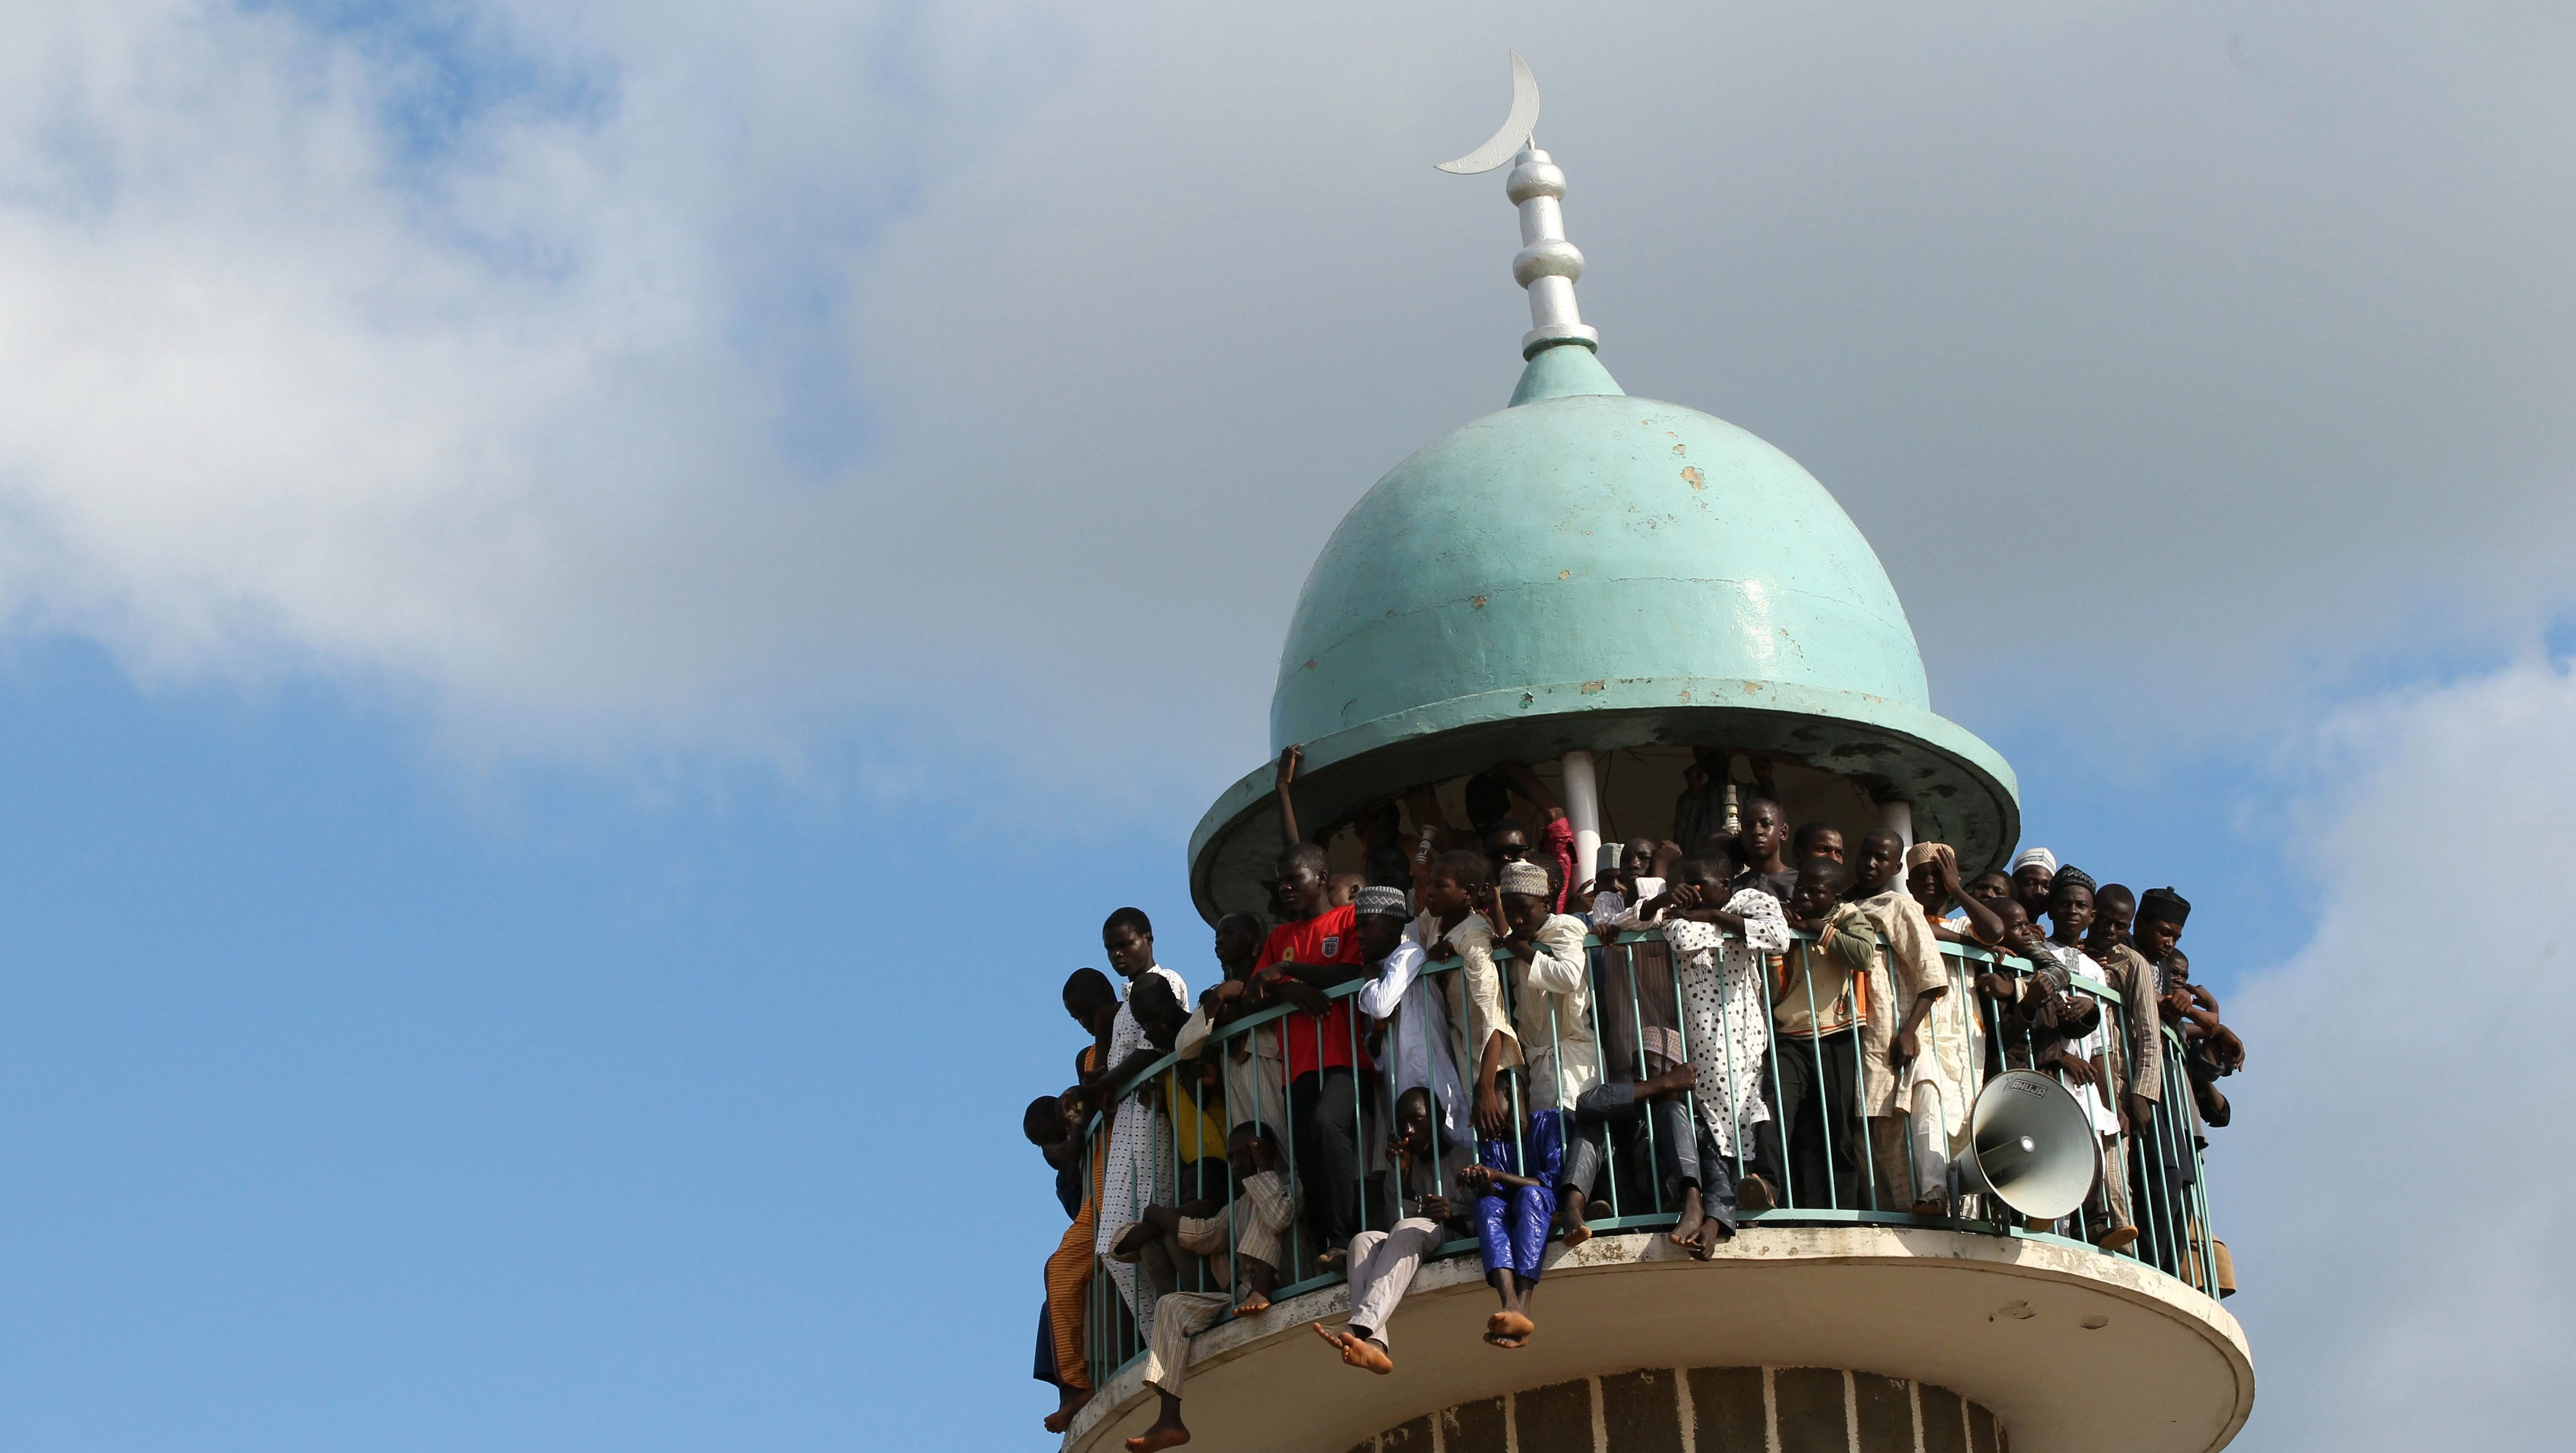 Spectators watch from a mosque minaret to try to get a better view of the Durbar festival parade in Zaria, Nigeria September 14, 2016. Picture taken September 14, 2016.